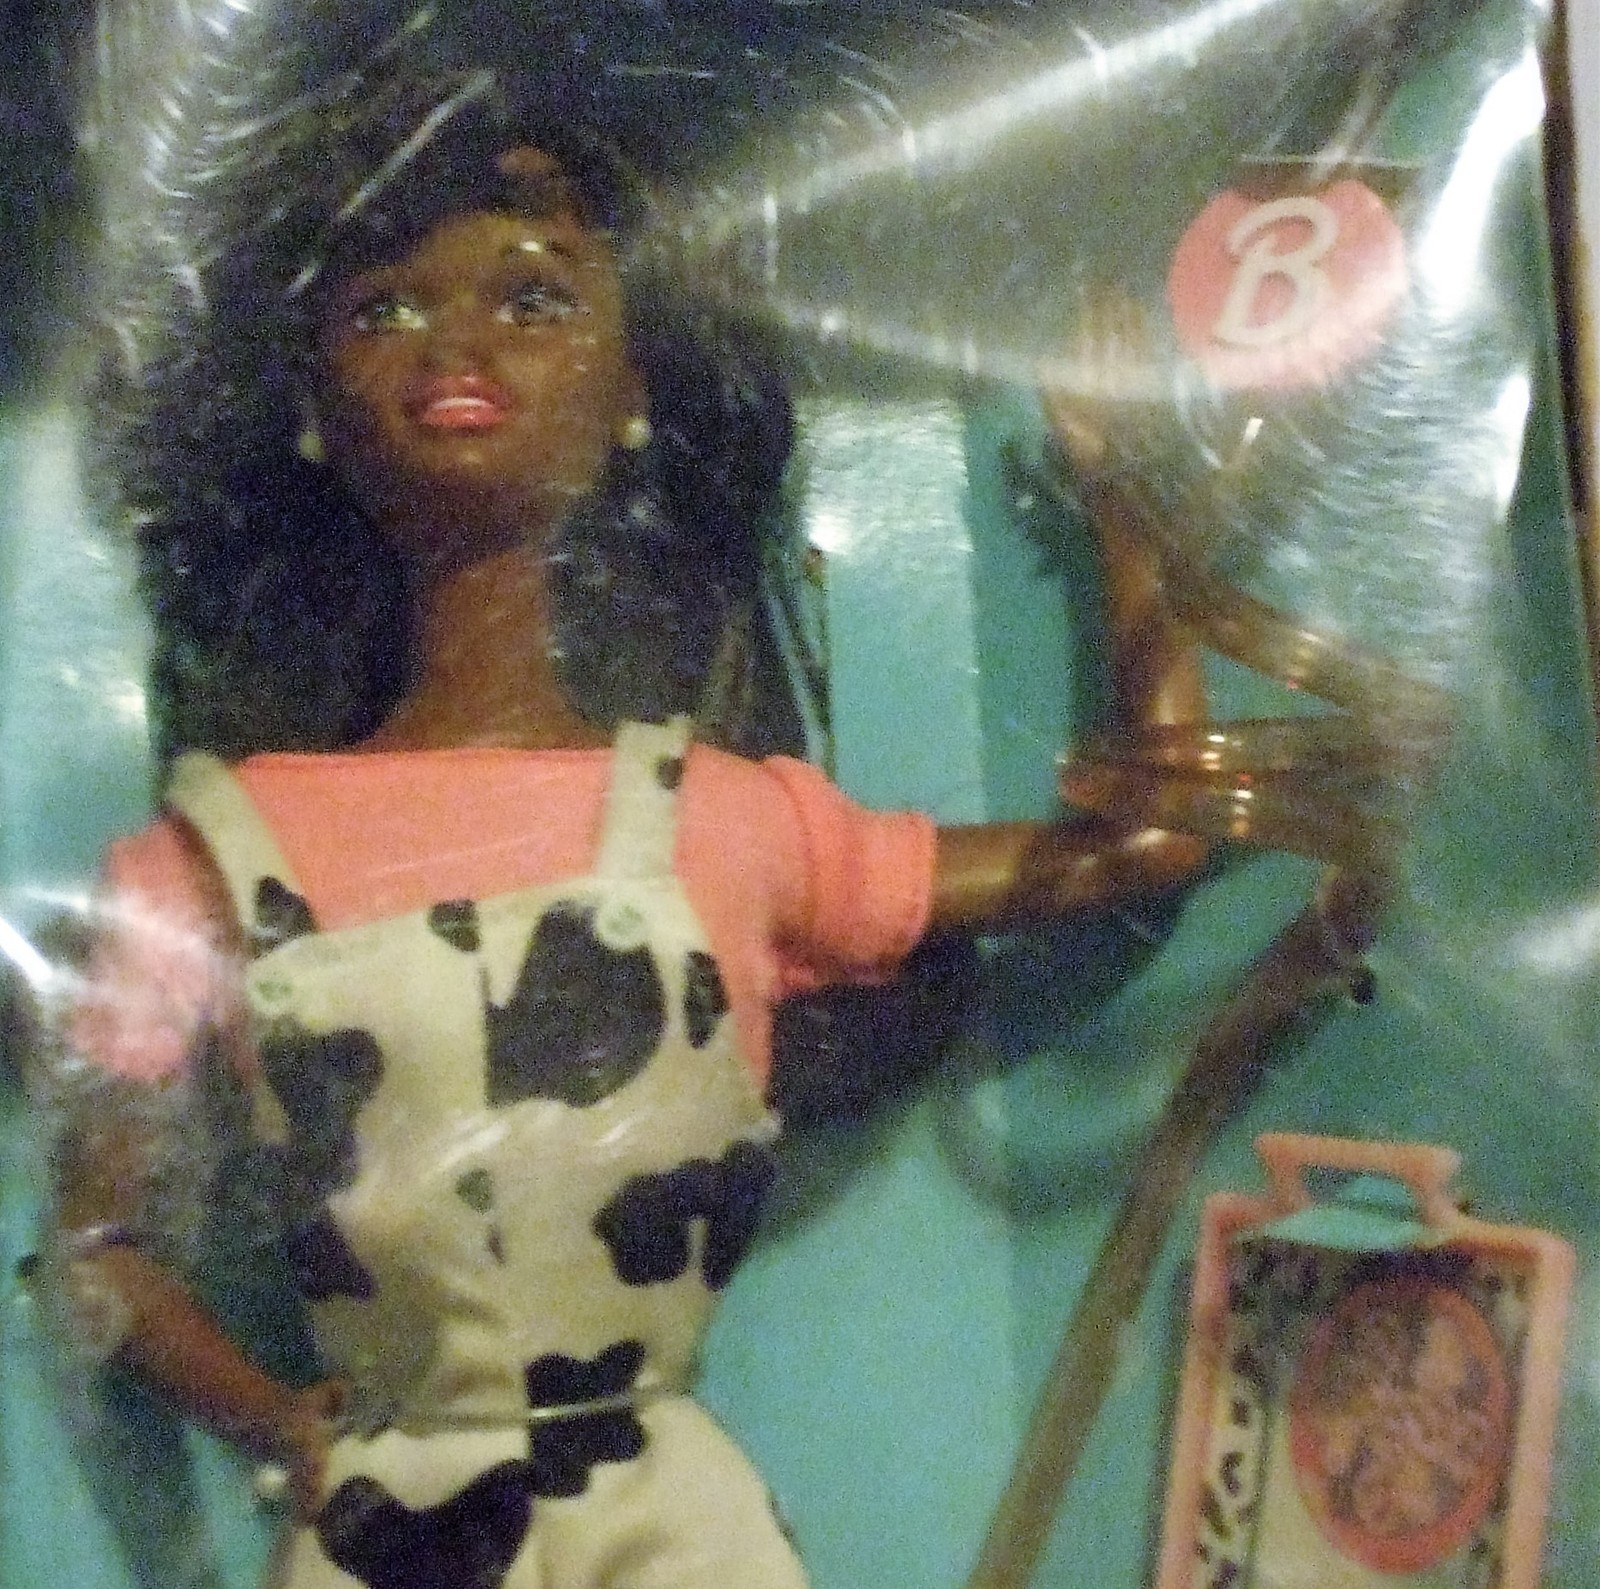 Barbie Doll AA - Got Milk Barbie?